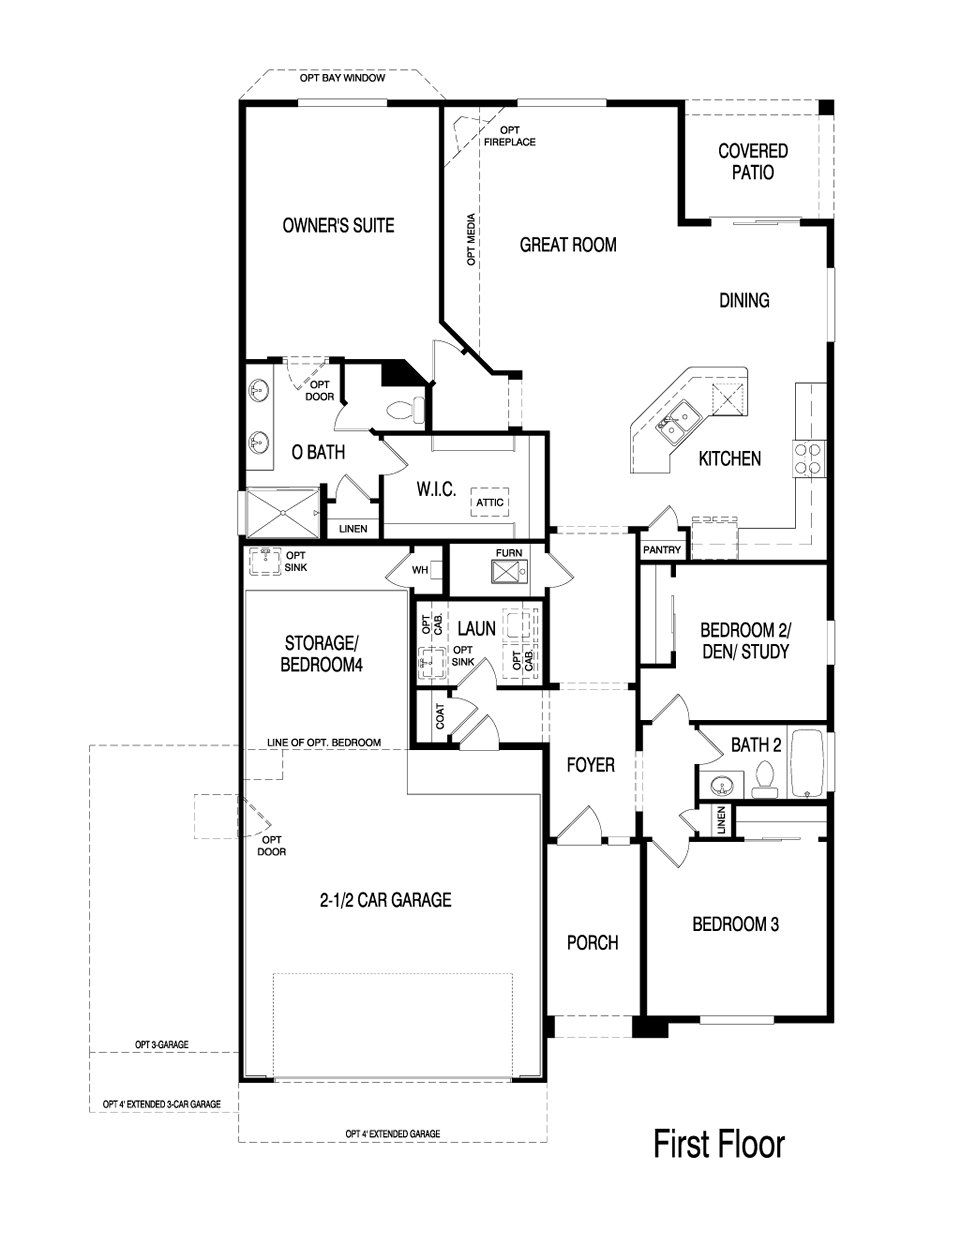 Pulte Homes Emerald Floor Plan via nmhometeam – Pulte Homes Floor Plans